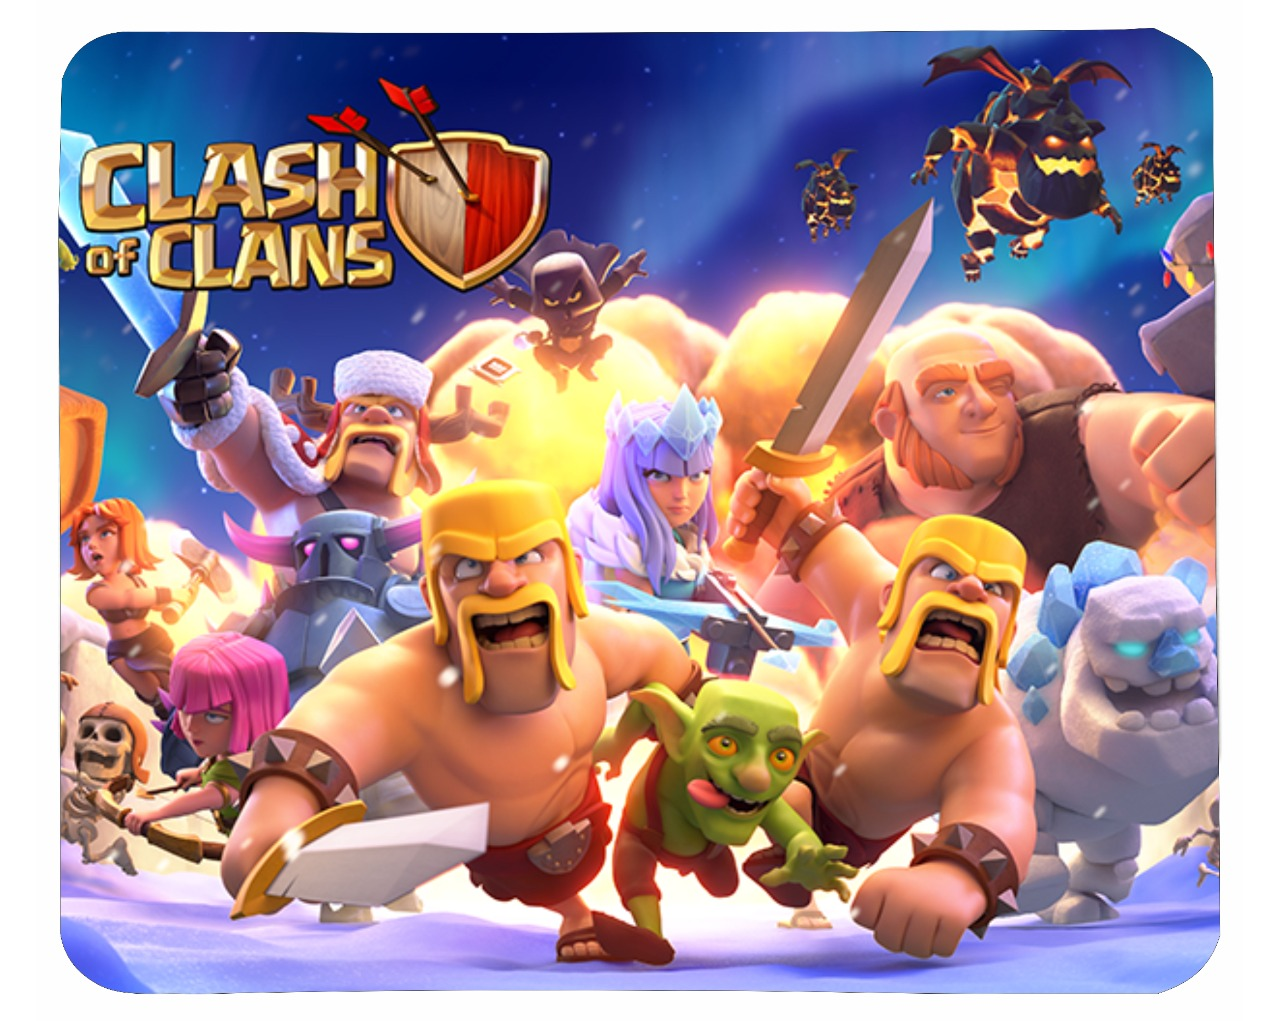 Clash Of Clans Printed Mouse Pad standard size 9 by 7 inch Clash Of Clans Printed Mouse Pad